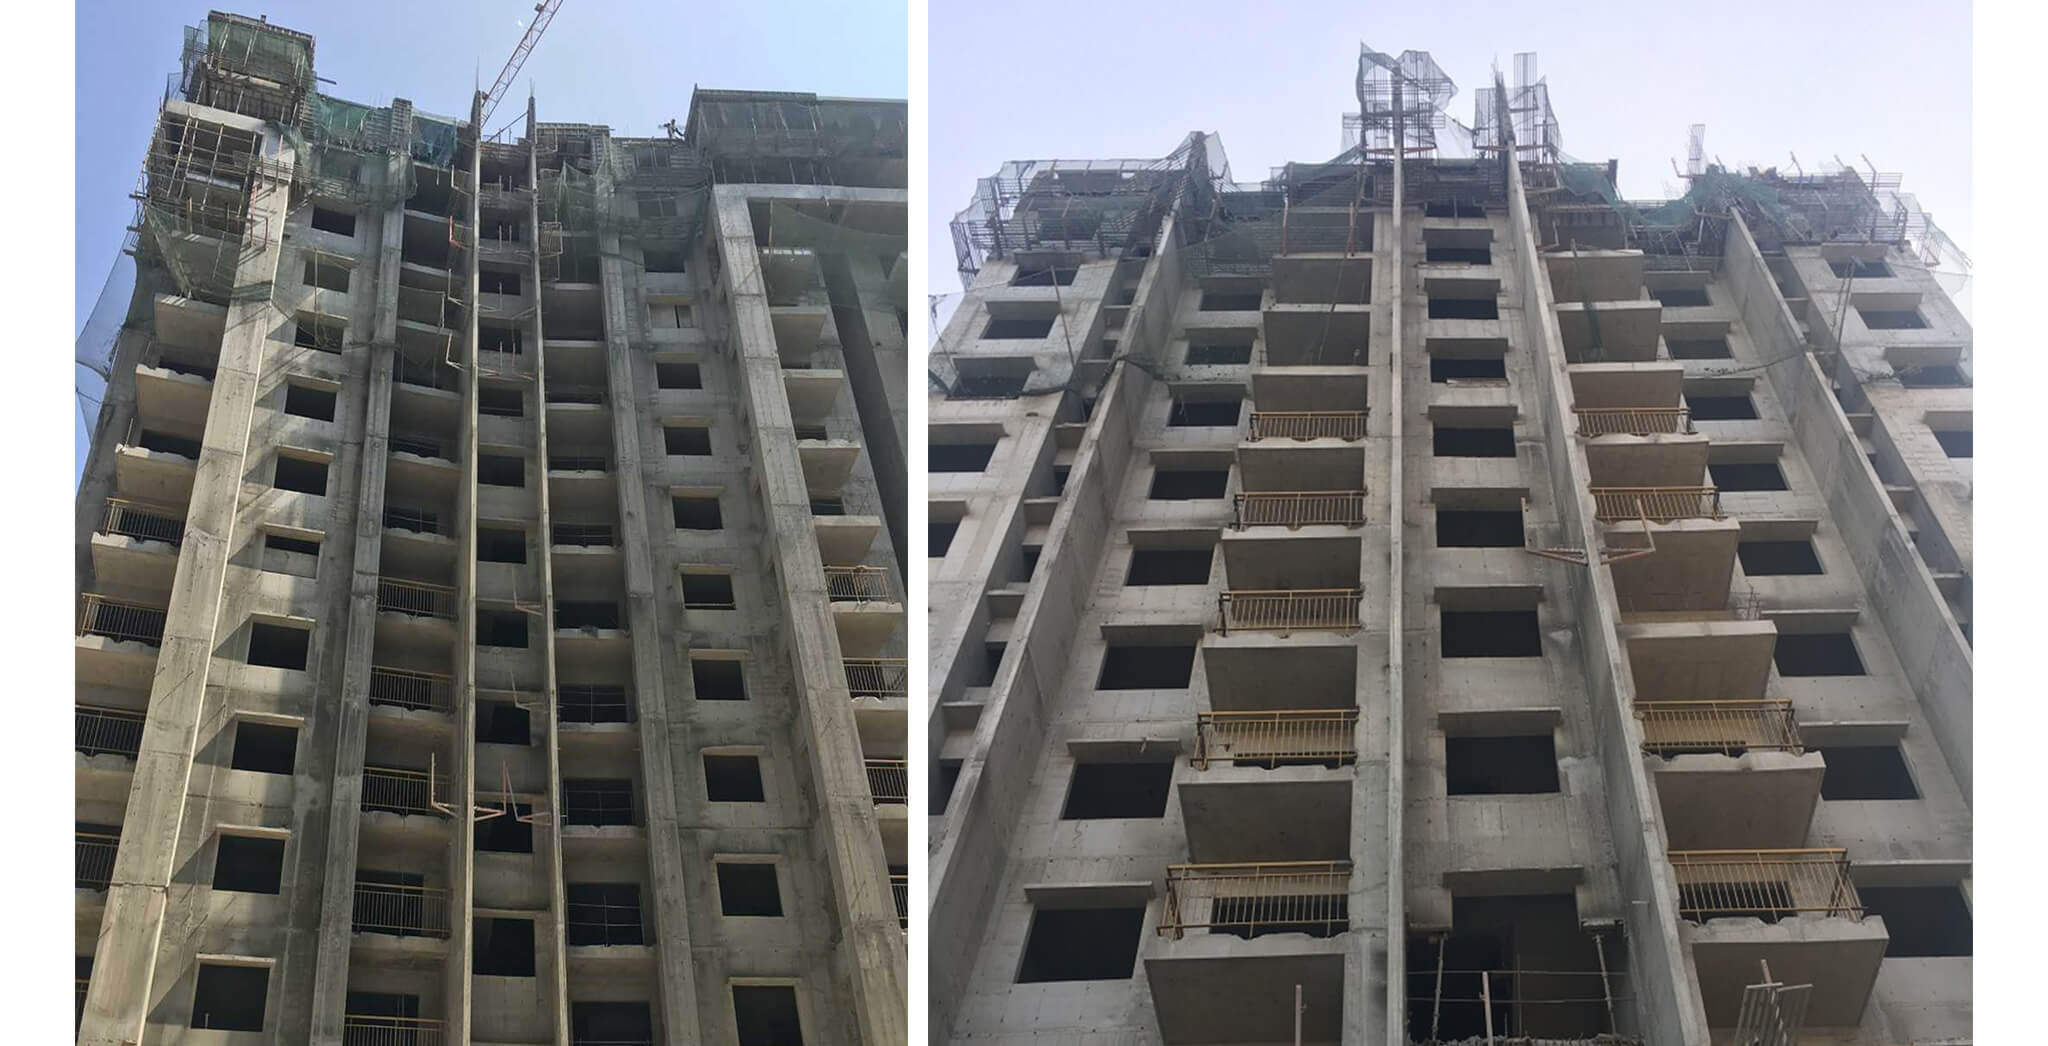 Crimson Block, S wing: 3 BHK Terrace work-in-progress; 2 BHK Terrace floor in progress